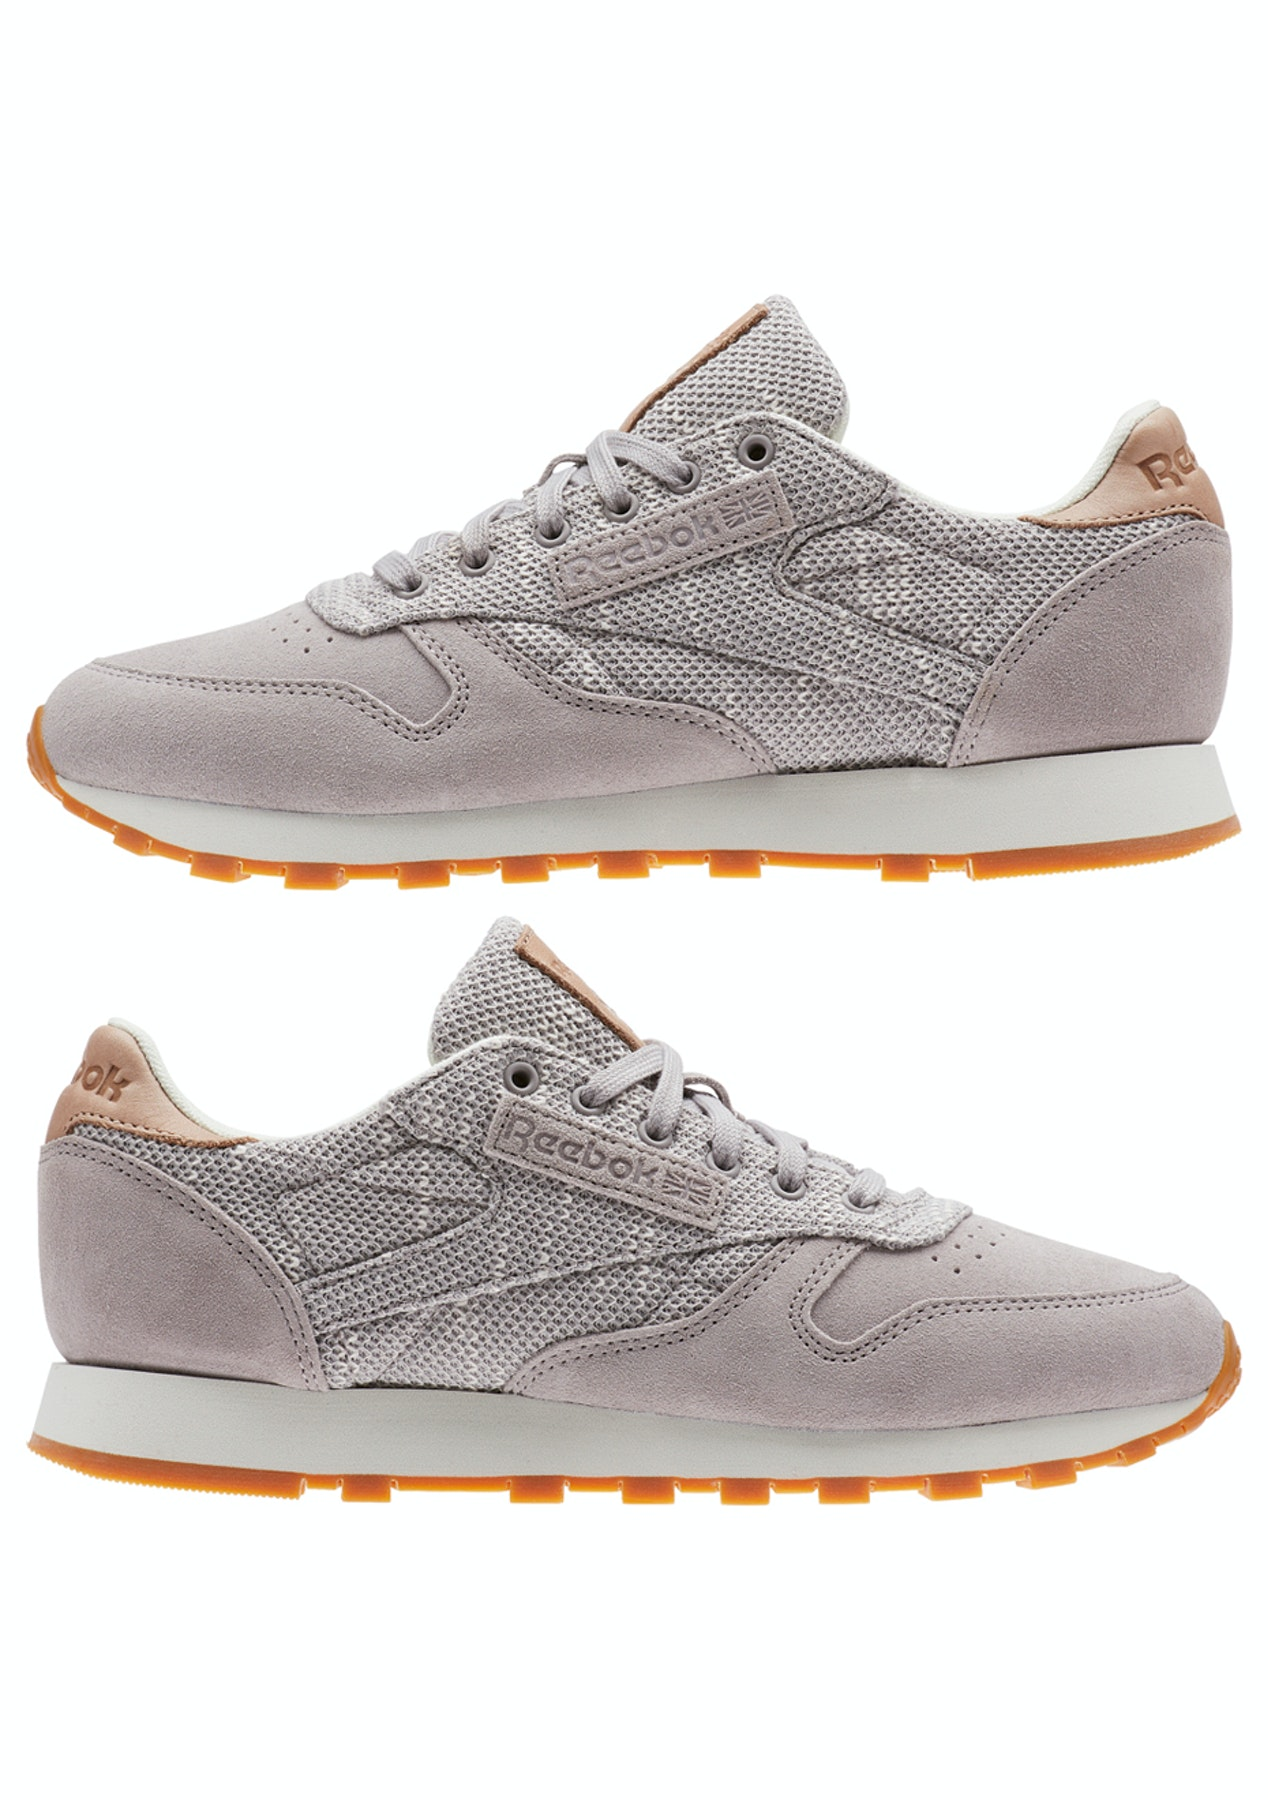 0c4240f68e288d Reebok Womens - Cl Leather Ebk - Grey Chalk Lilac Ash - Reebok Encore -  Onceit